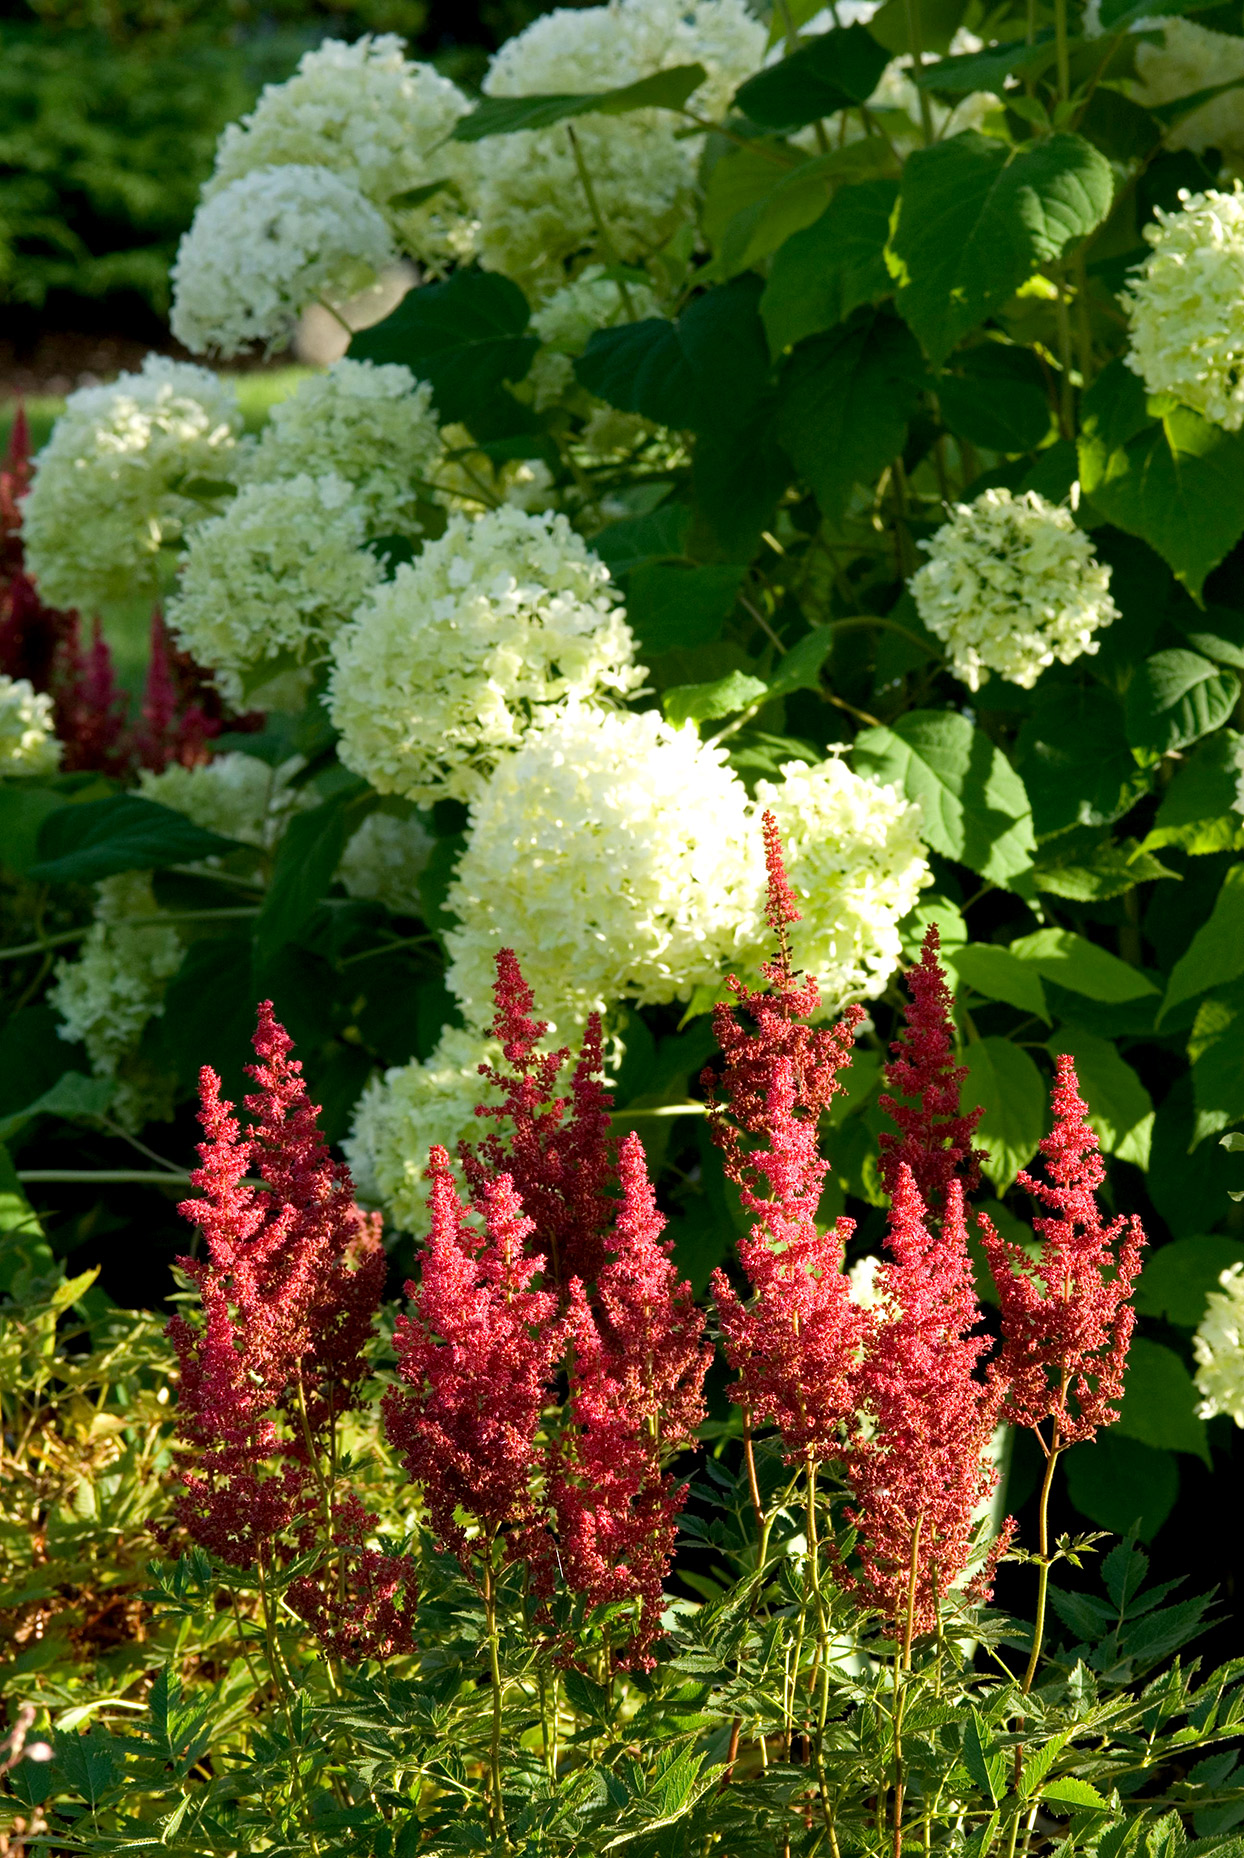 Hydrangeas Make a Beautiful Backdrop for Perennials